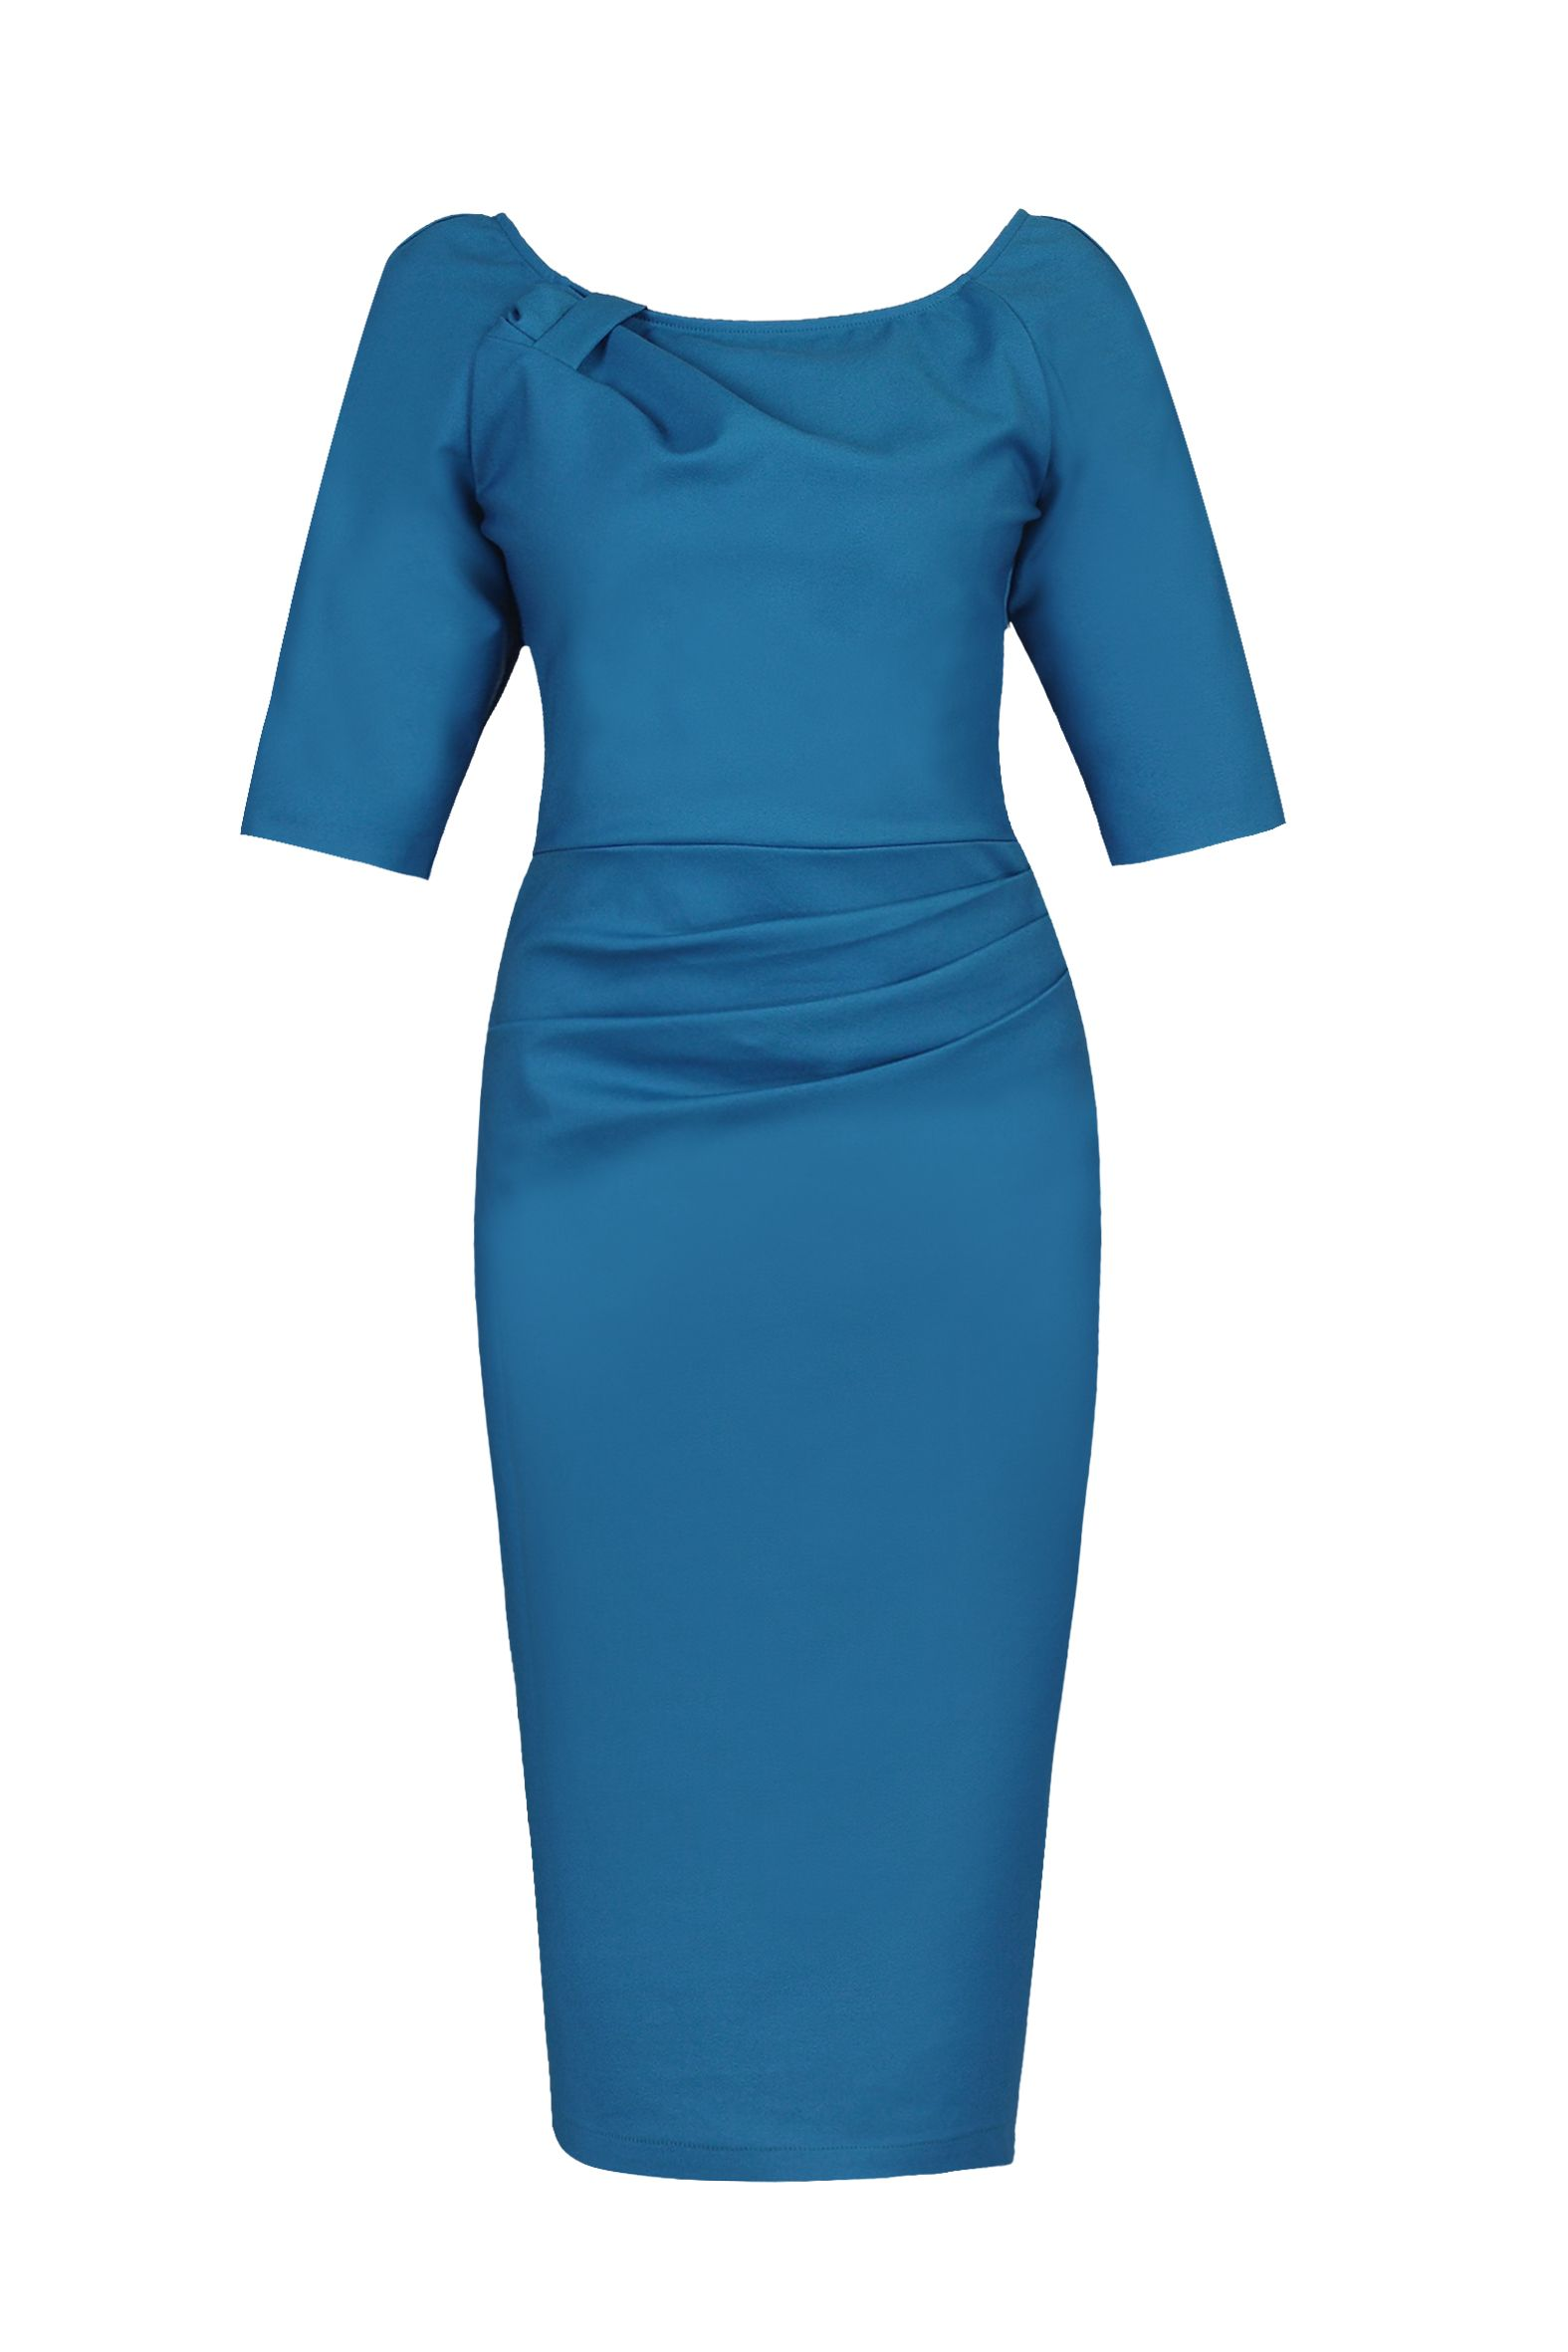 Jolie Moi 12 Sleeve Ruched Wiggle Dress, Teal